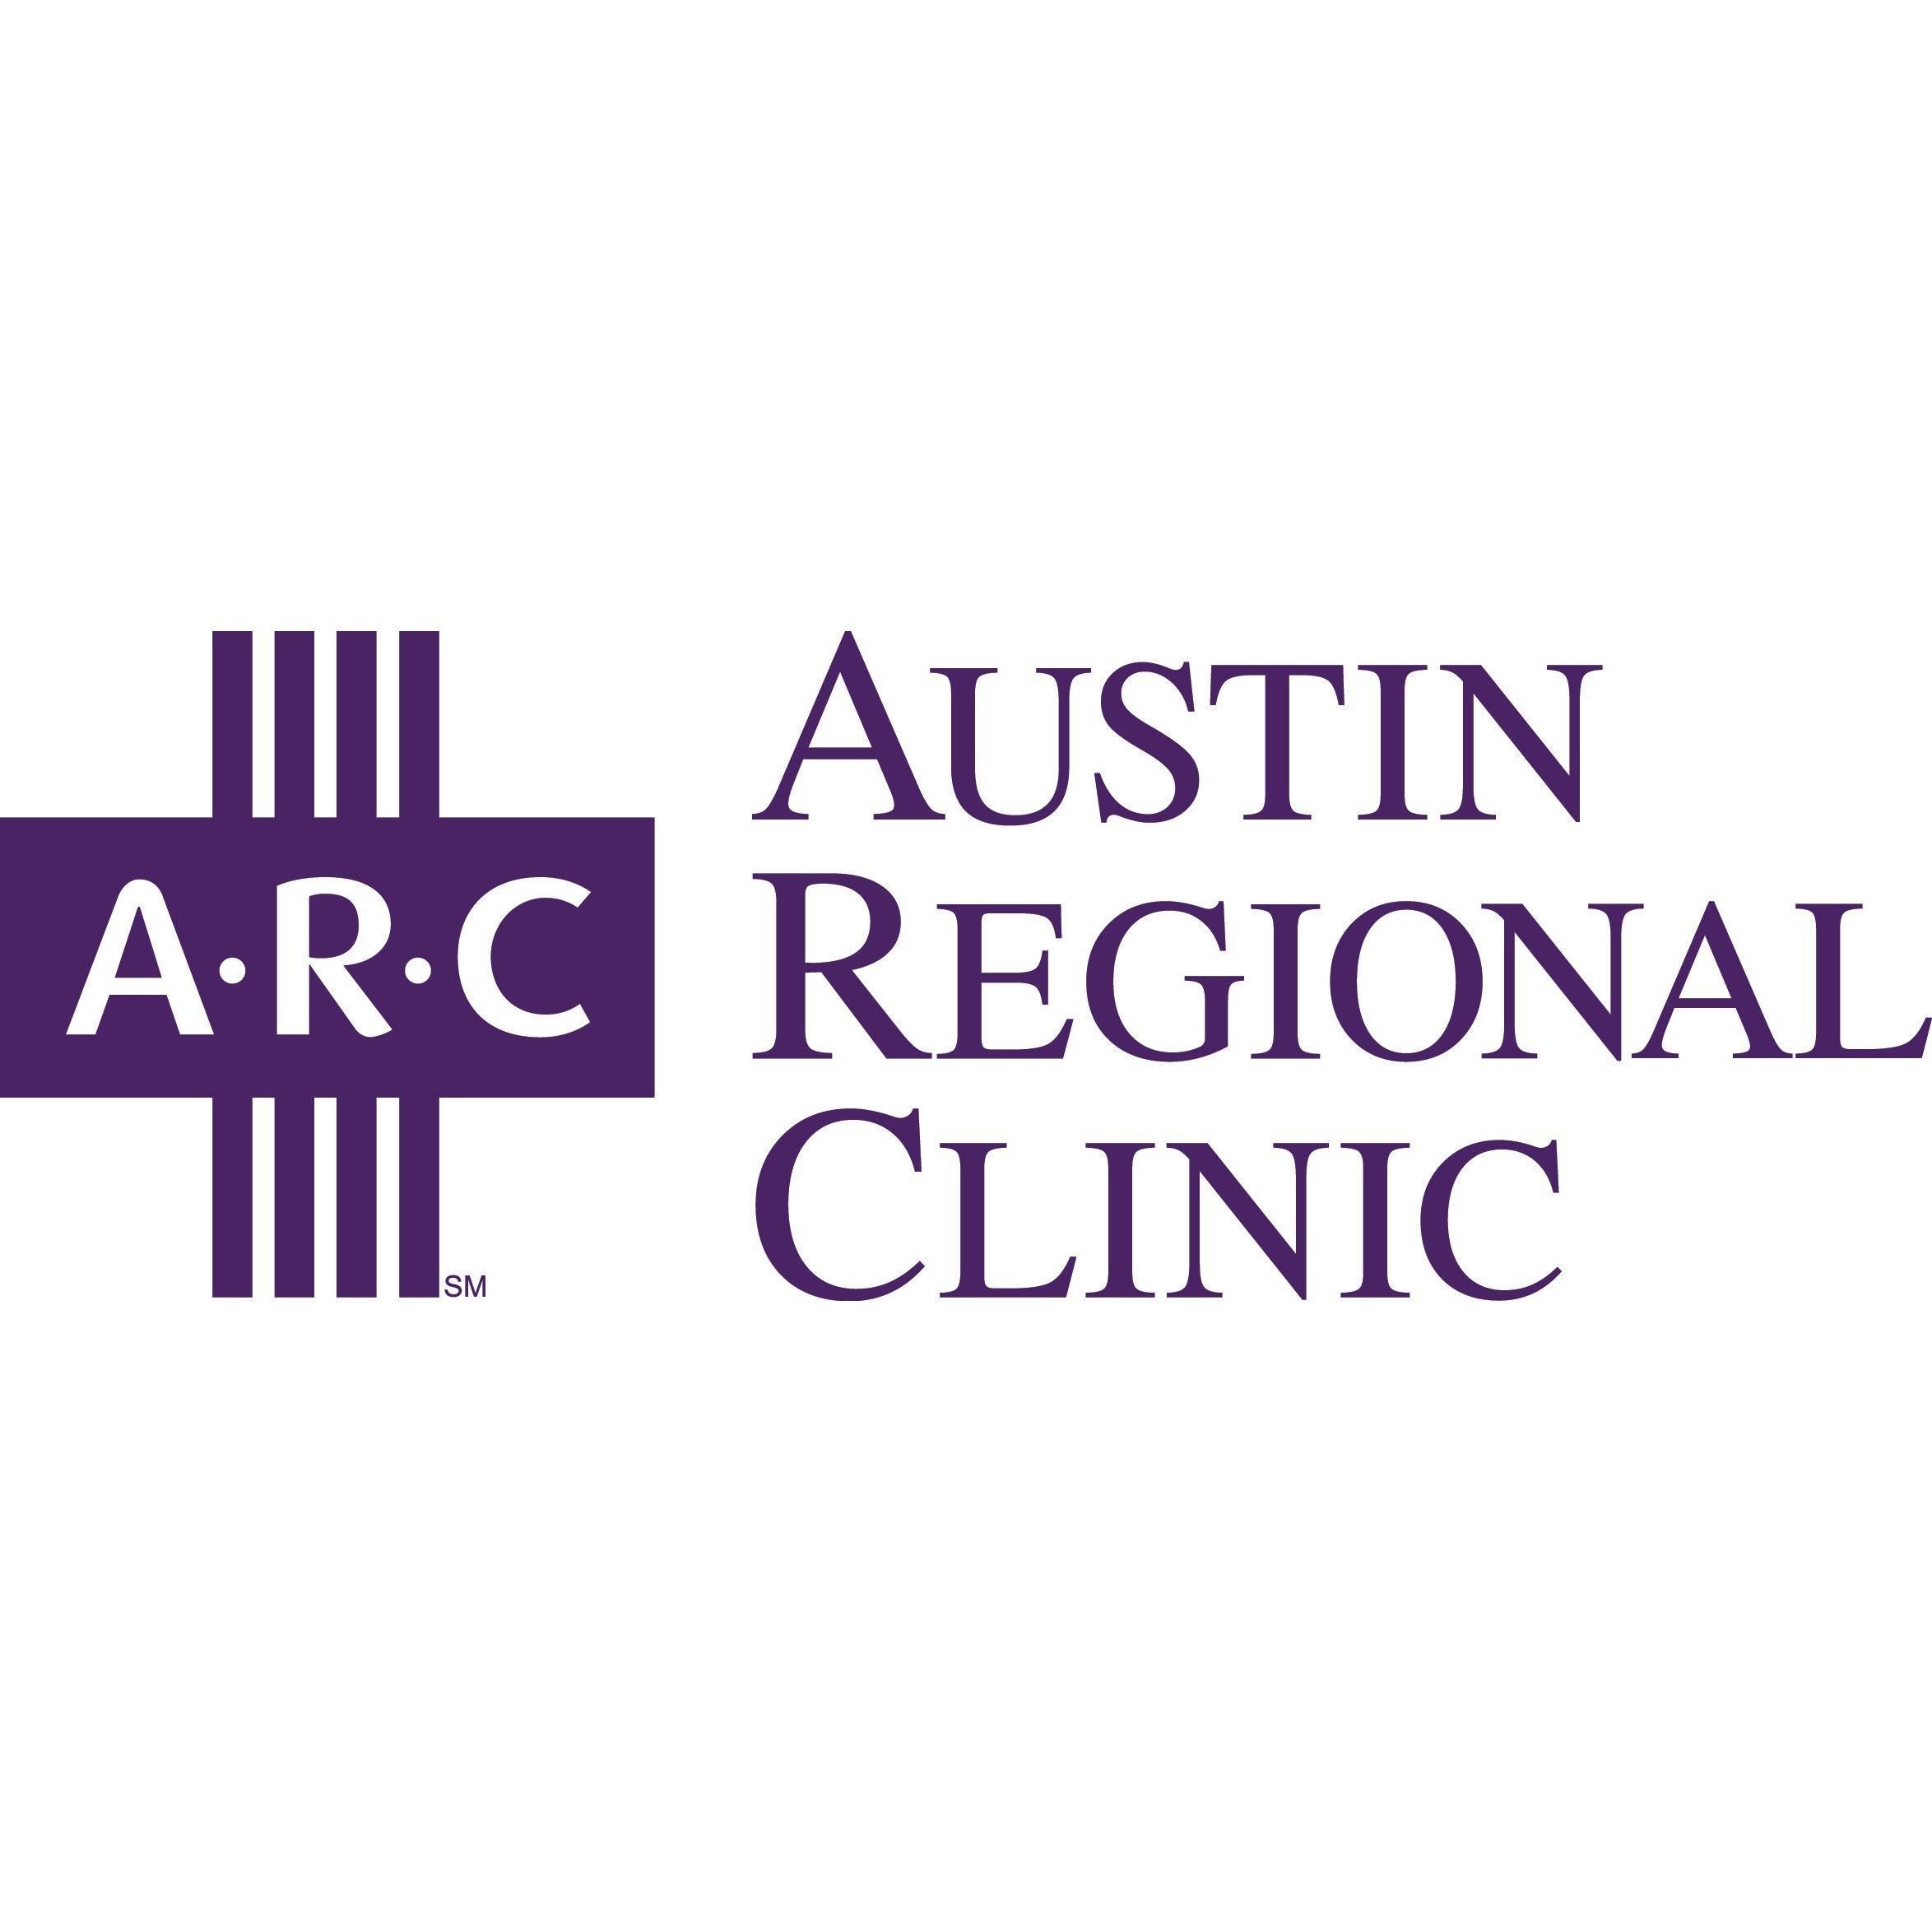 Austin Regional Clinic: ARC  South 1st